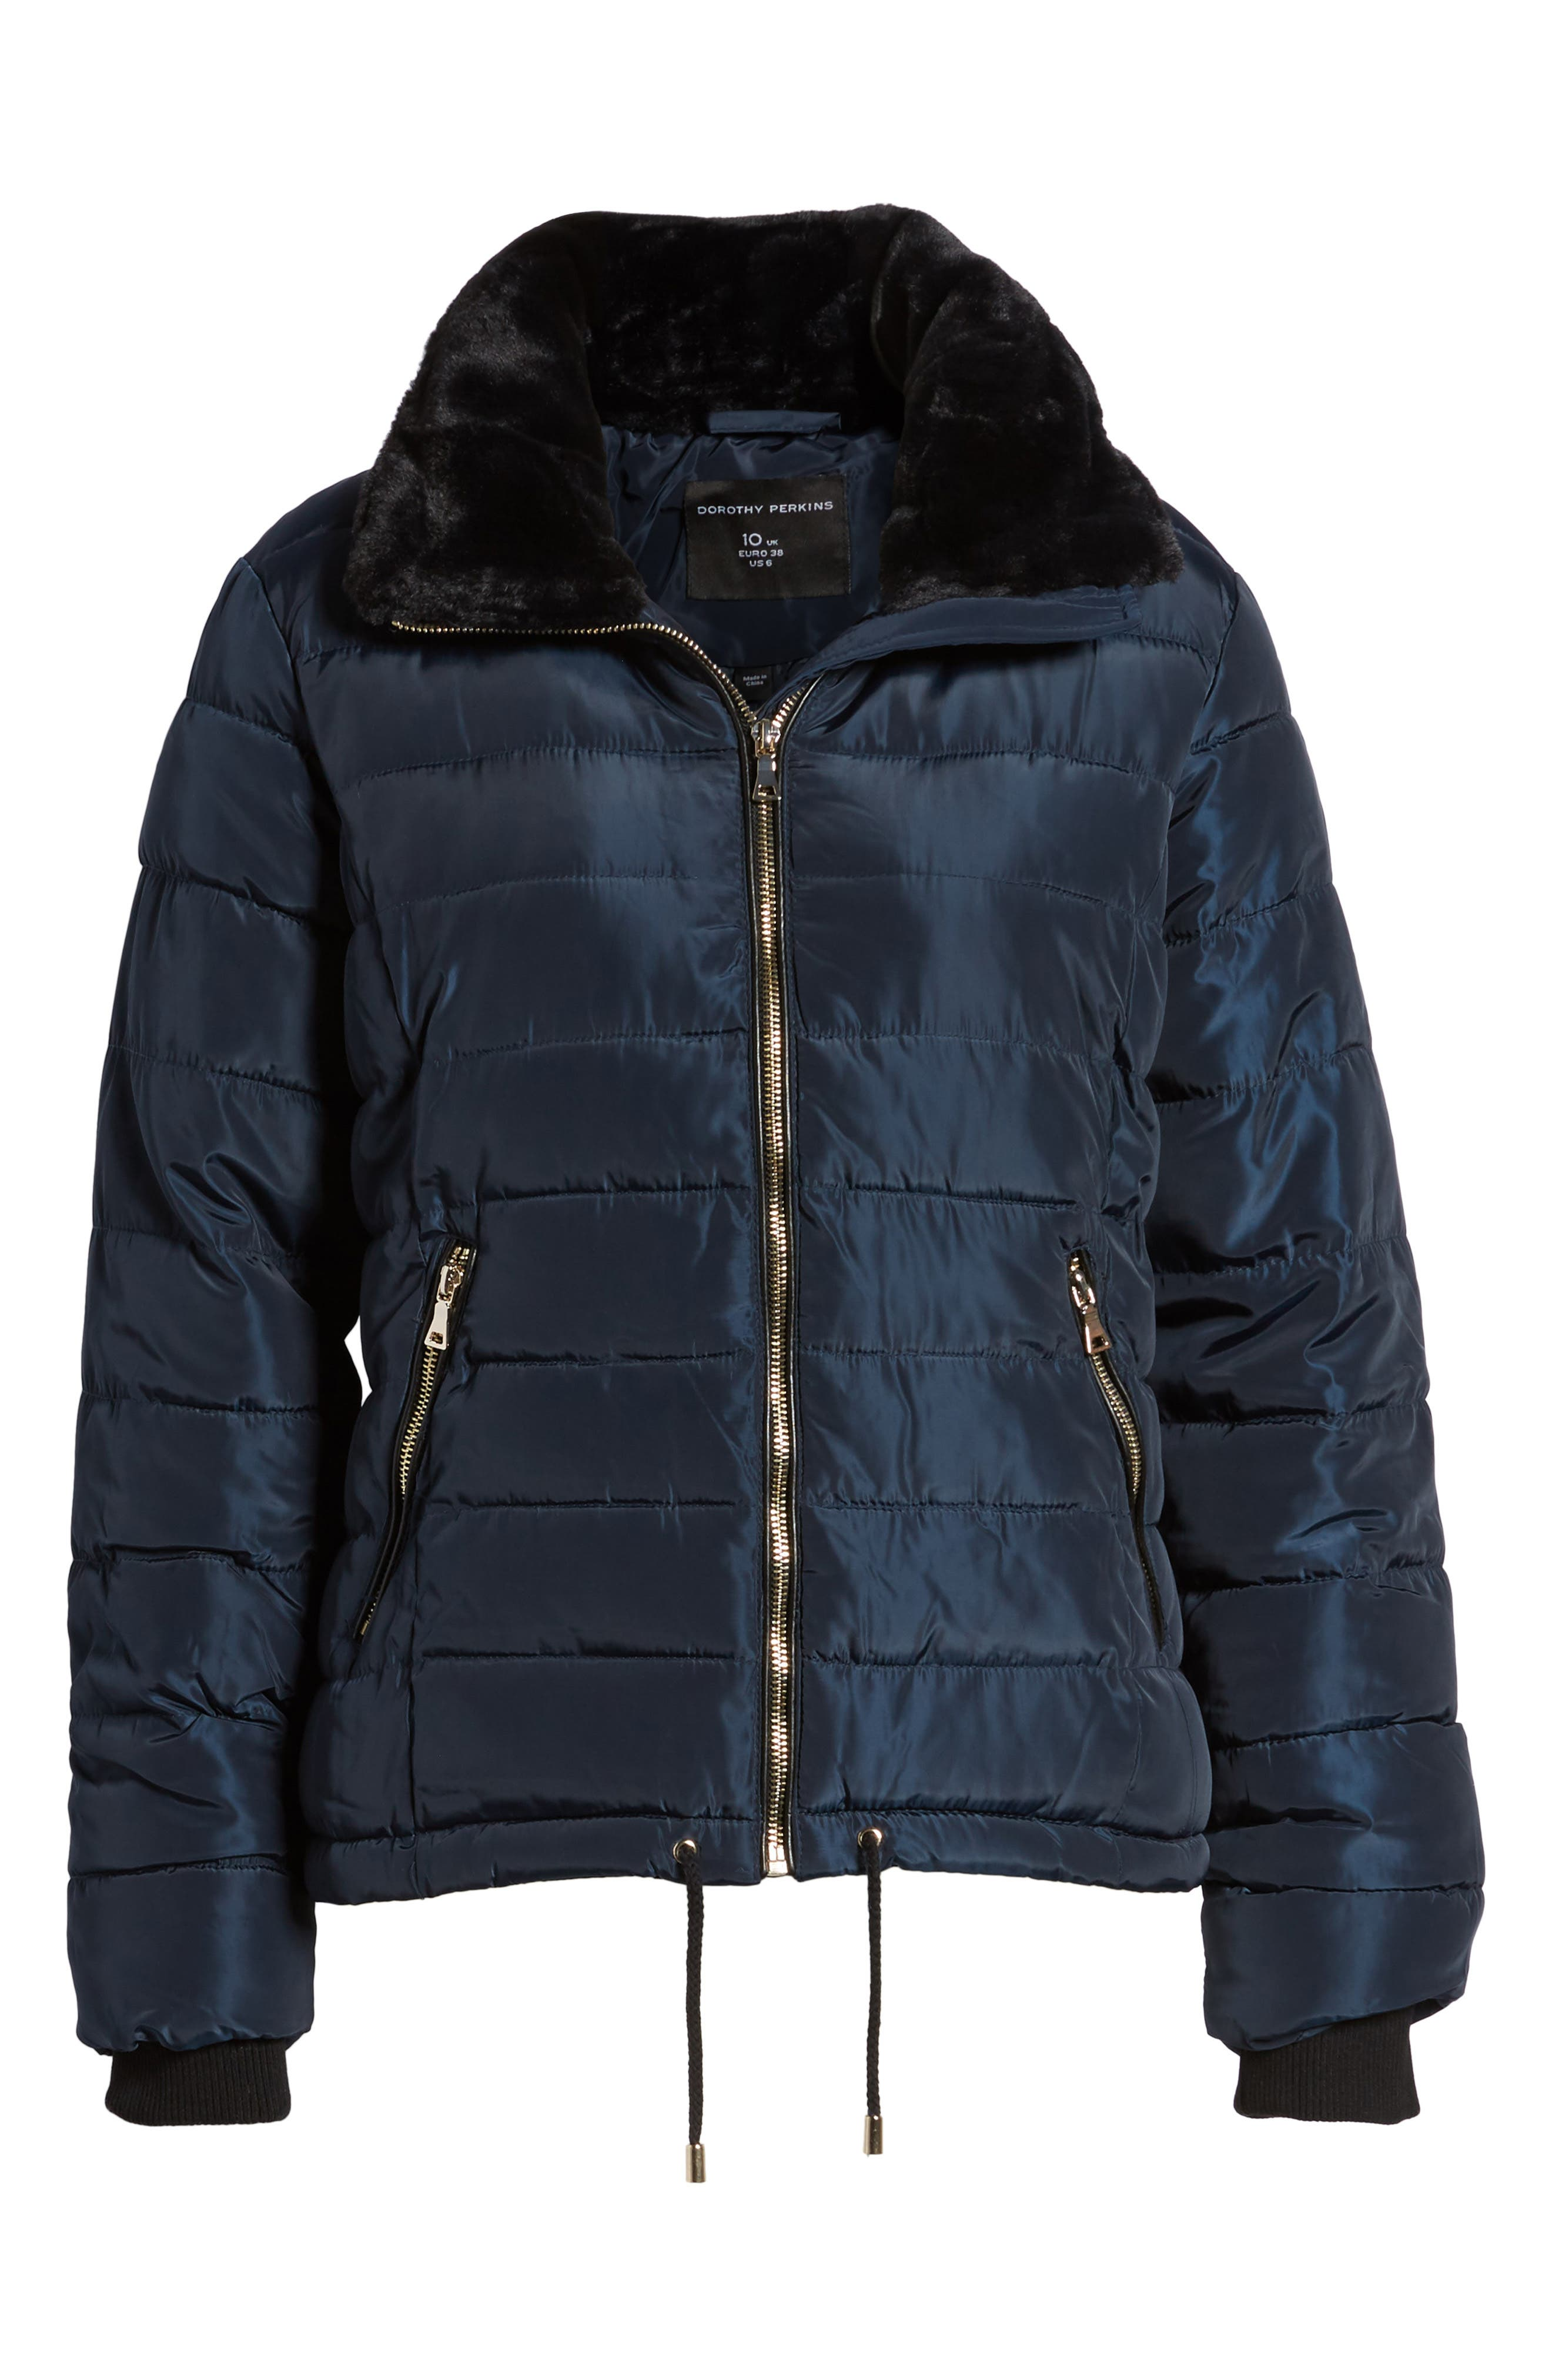 Puffer Jacket with Faux Fur Collar Lining,                             Alternate thumbnail 5, color,                             400